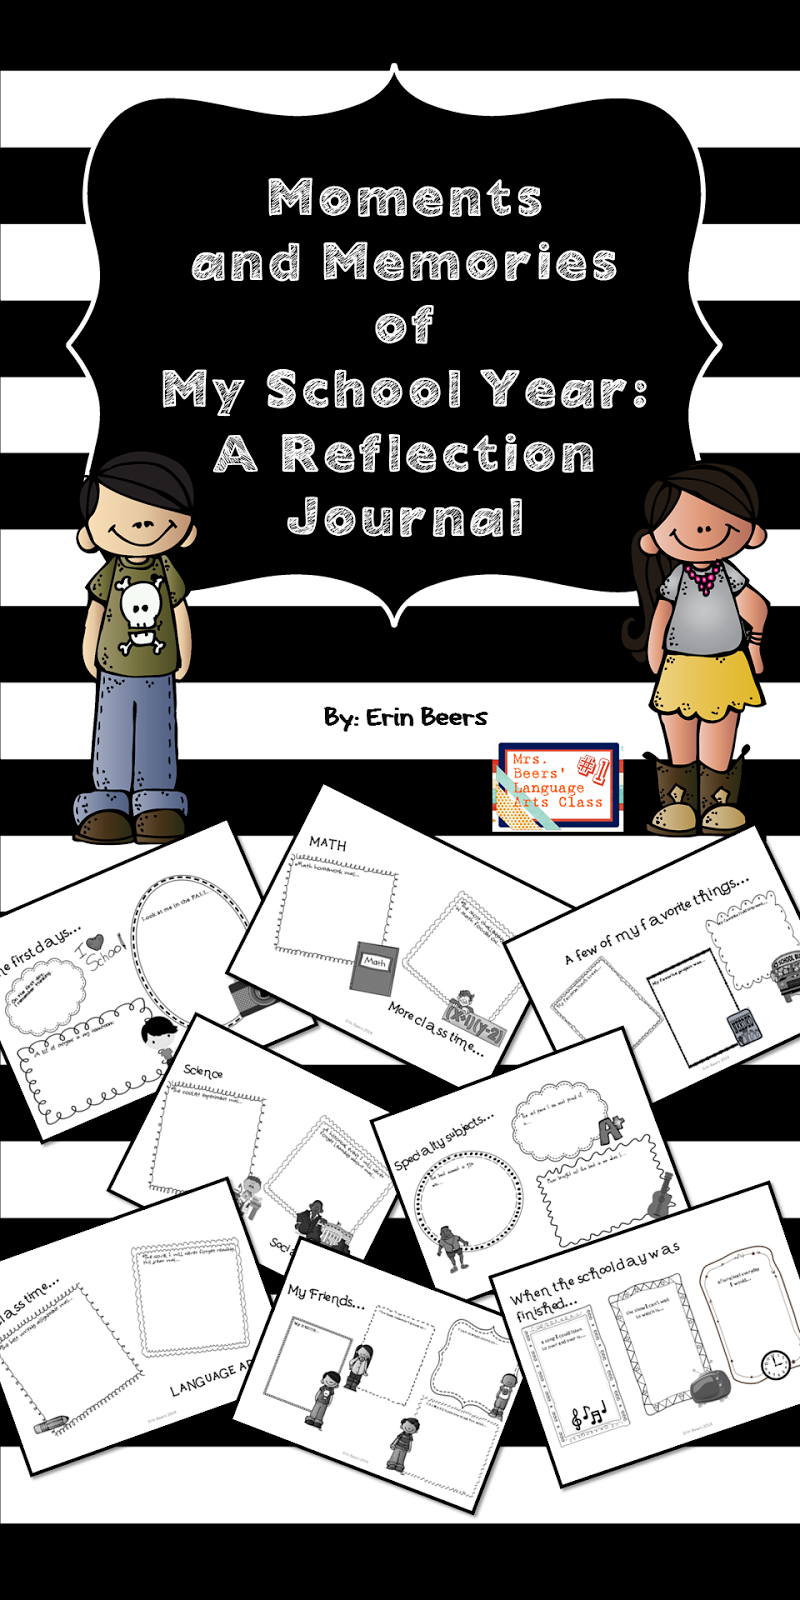 http://www.teacherspayteachers.com/Product/Memories-of-My-School-Year-NO-PREP-End-of-Year-Student-Reflection-Journal-1136893